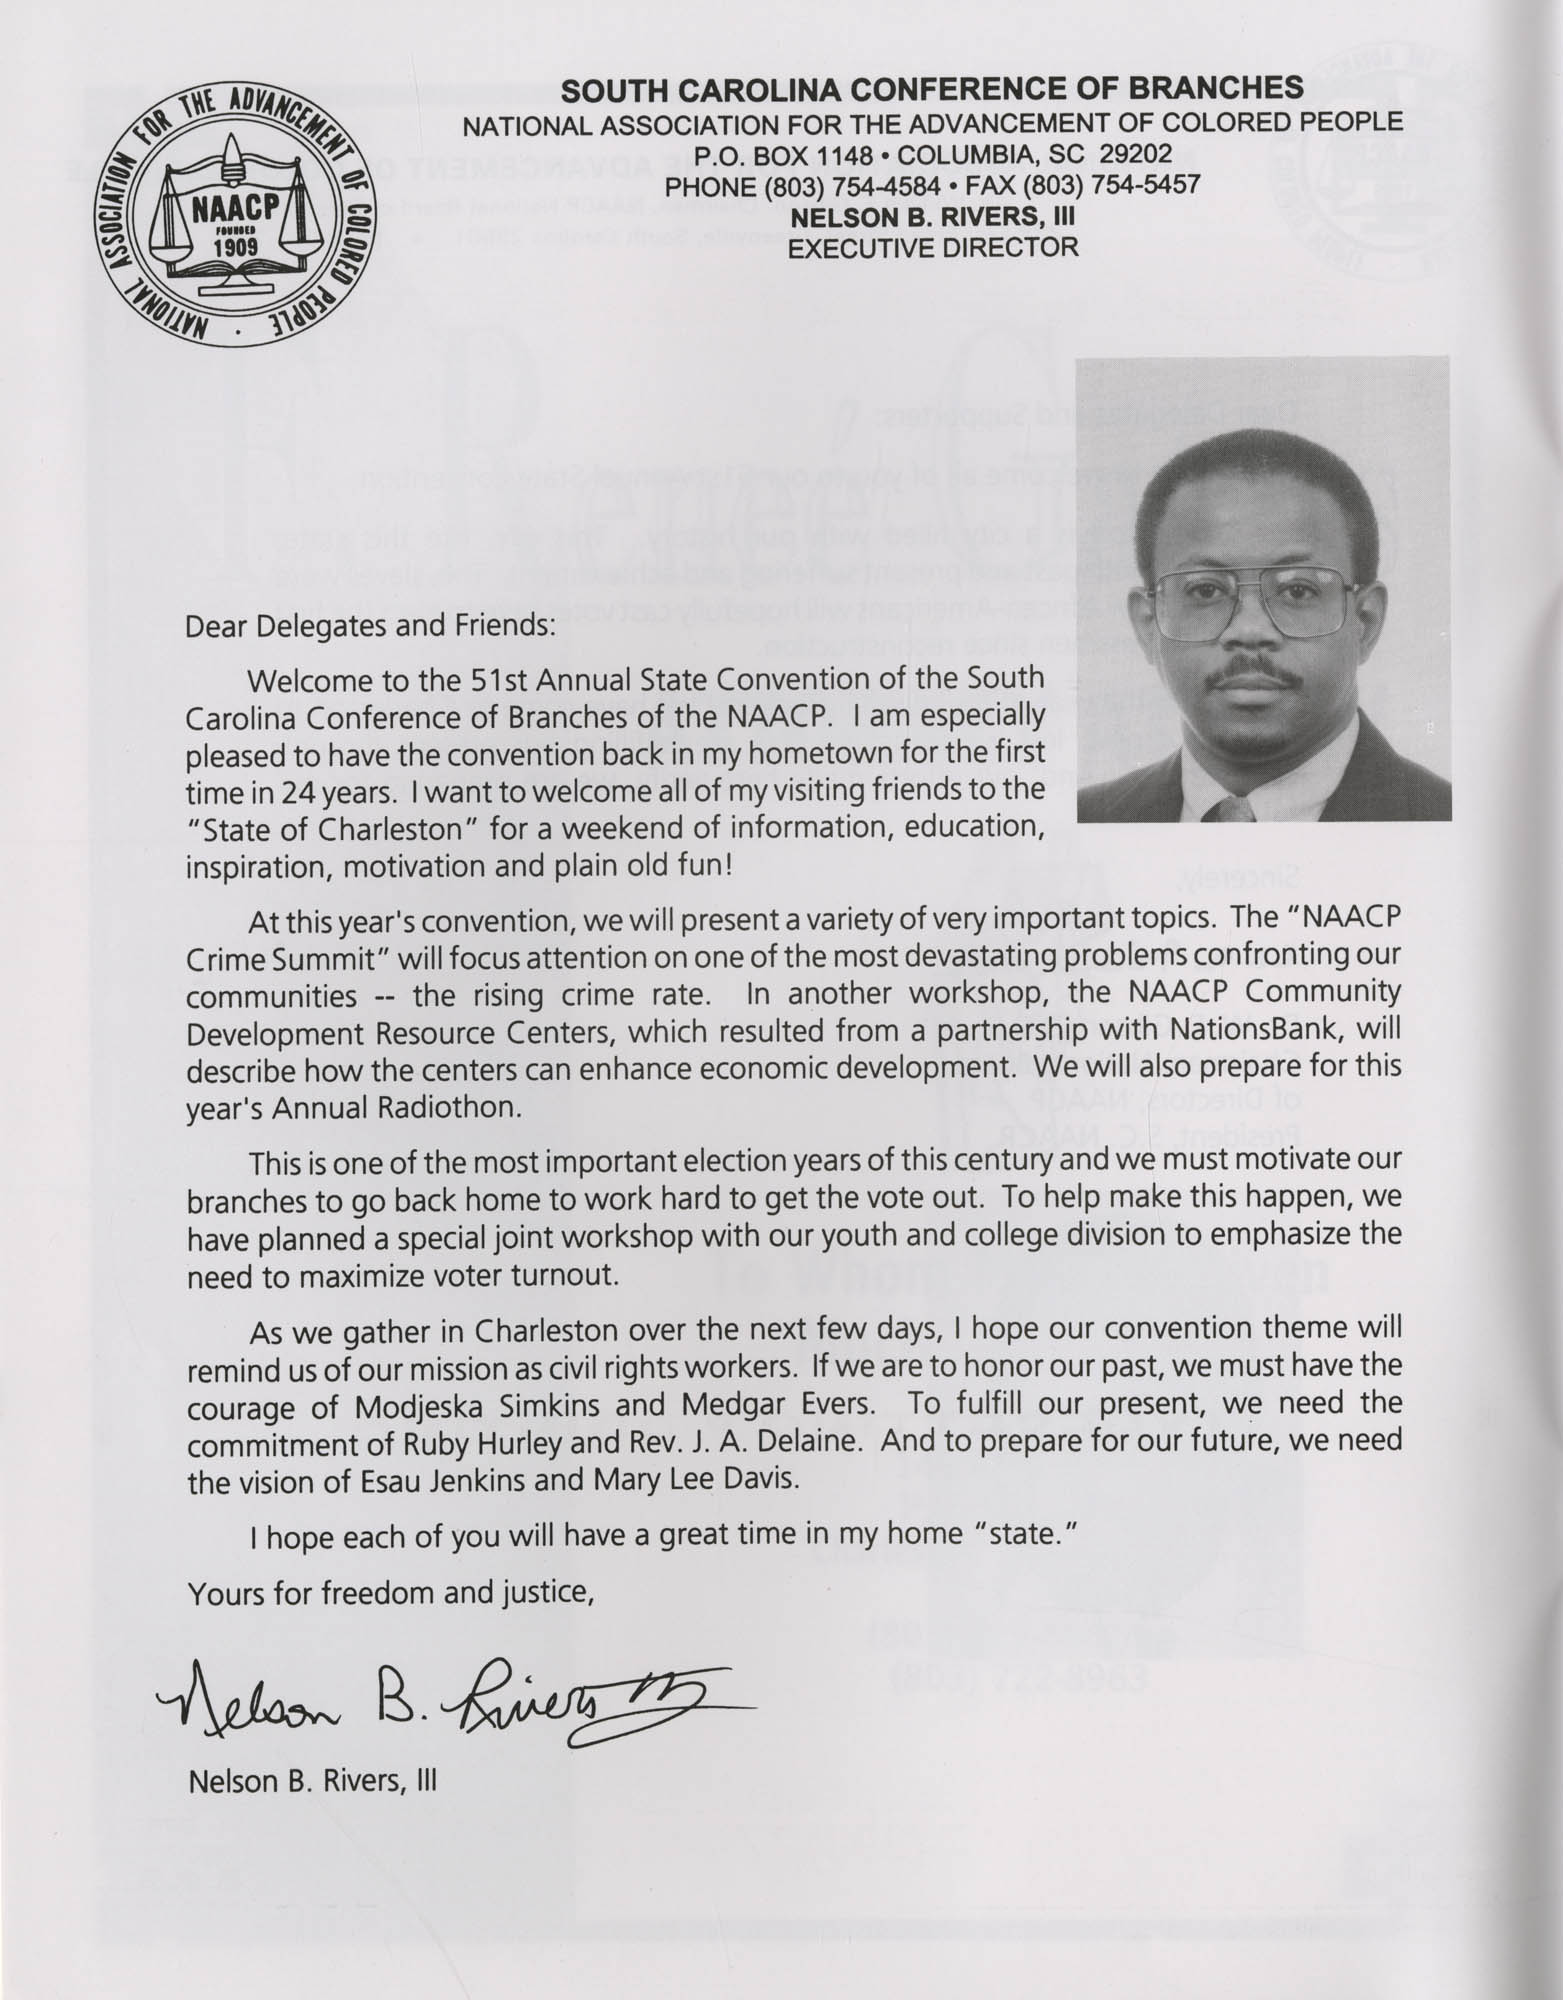 Charleston Branch of the NAACP 51st Annual State Convention Program, Page 2